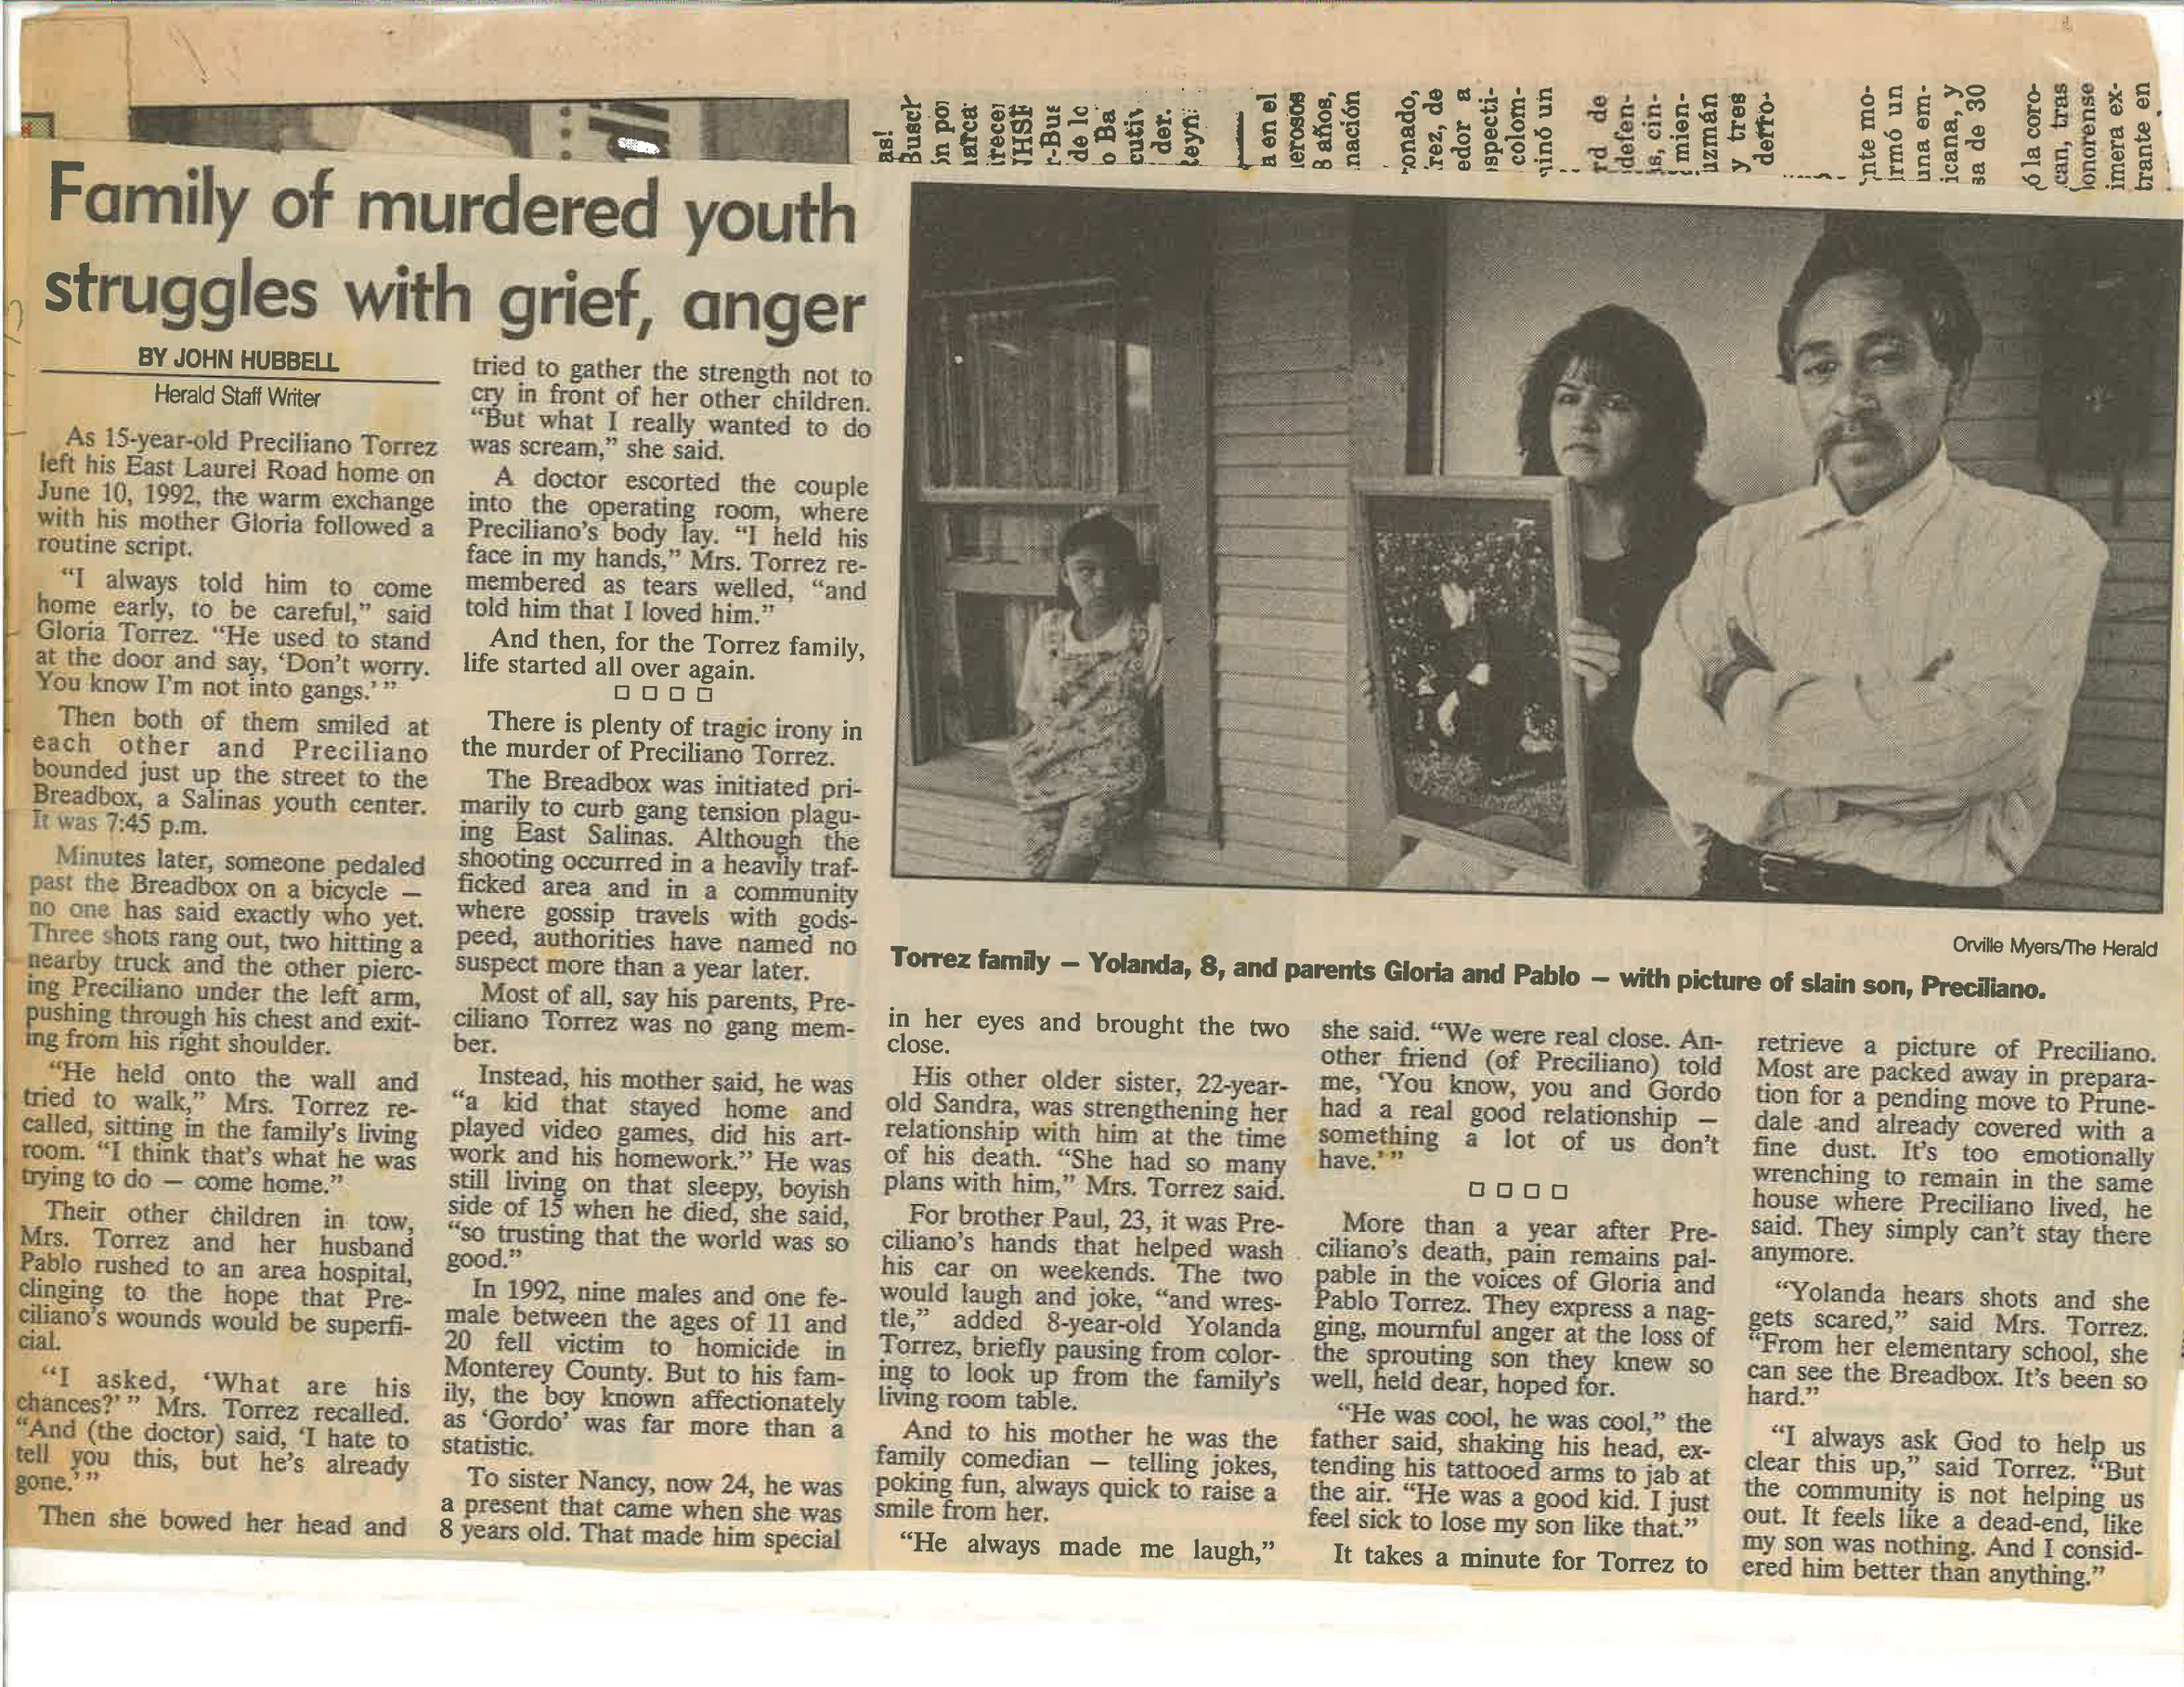 An article talks about the toll Preciliano's death took on the Torrez family.